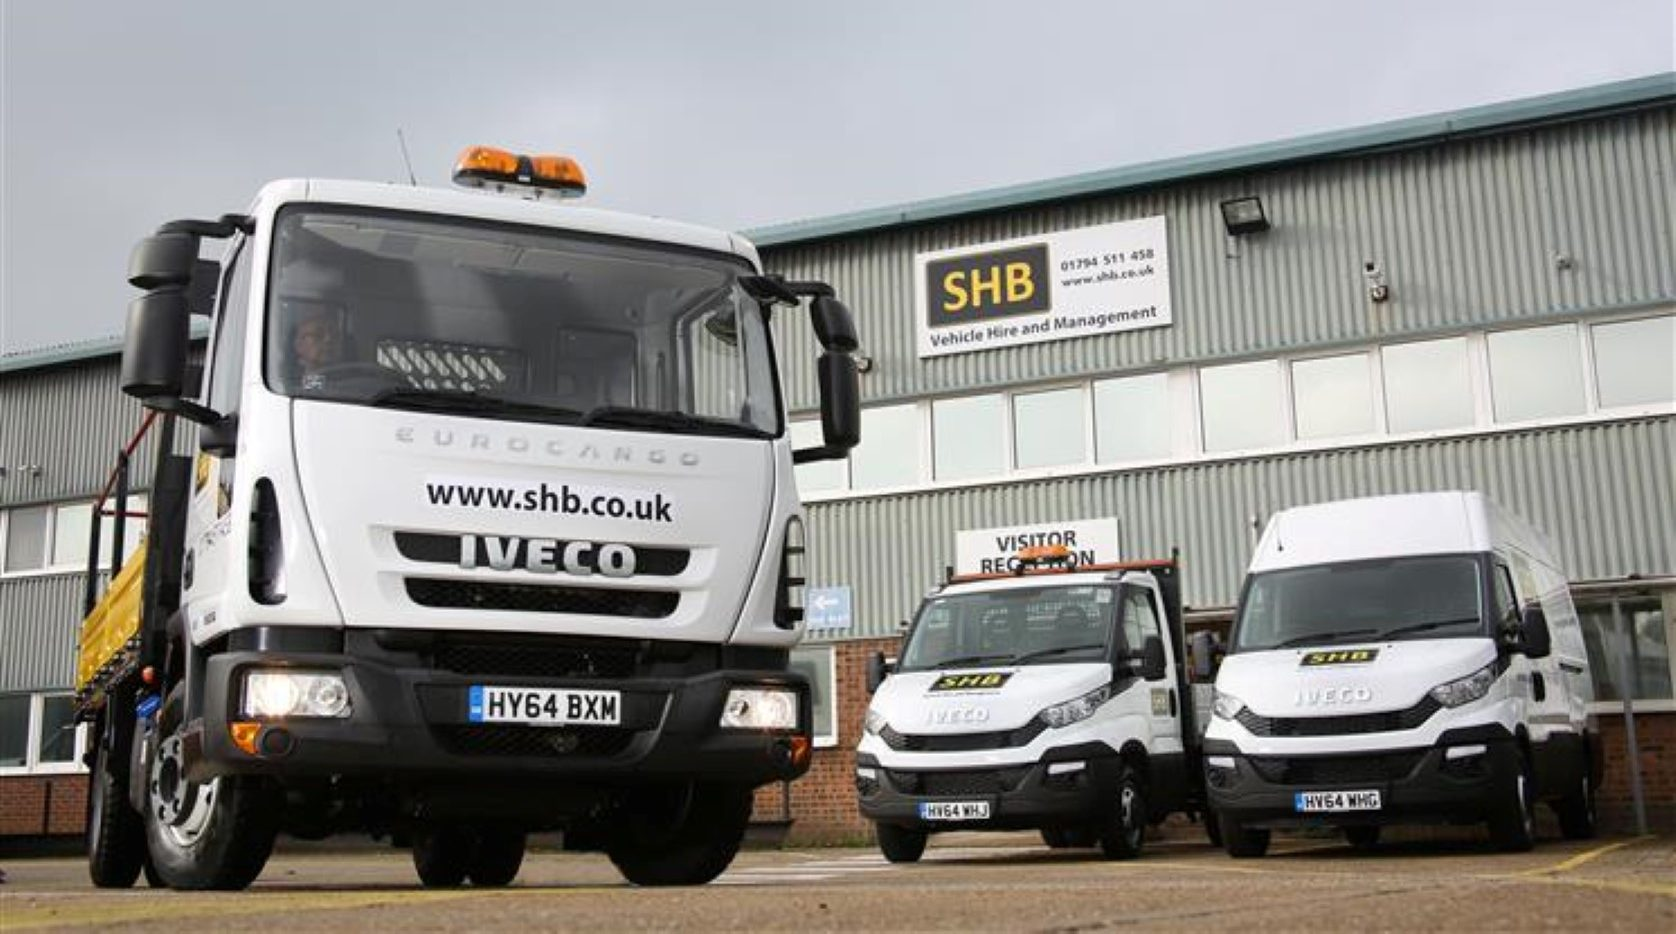 SHB Vehicle Hire chooses FOD technology platform to underpin new customer experience